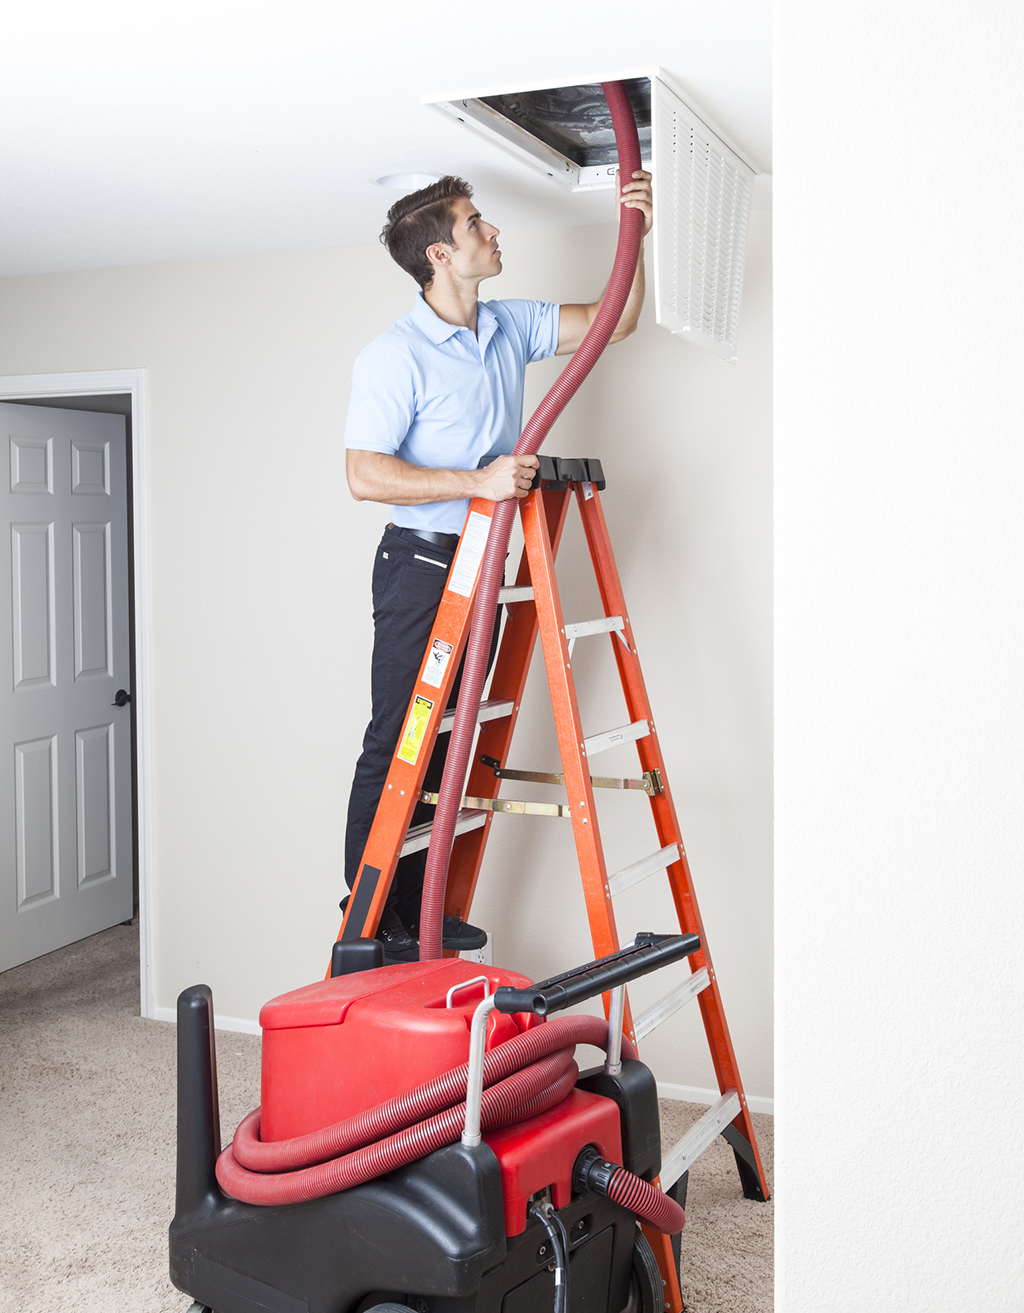 Keeping-Your-HVAC-System-Clean-with-Regular-Duct-Cleaning-_-St.-Paul,-MN